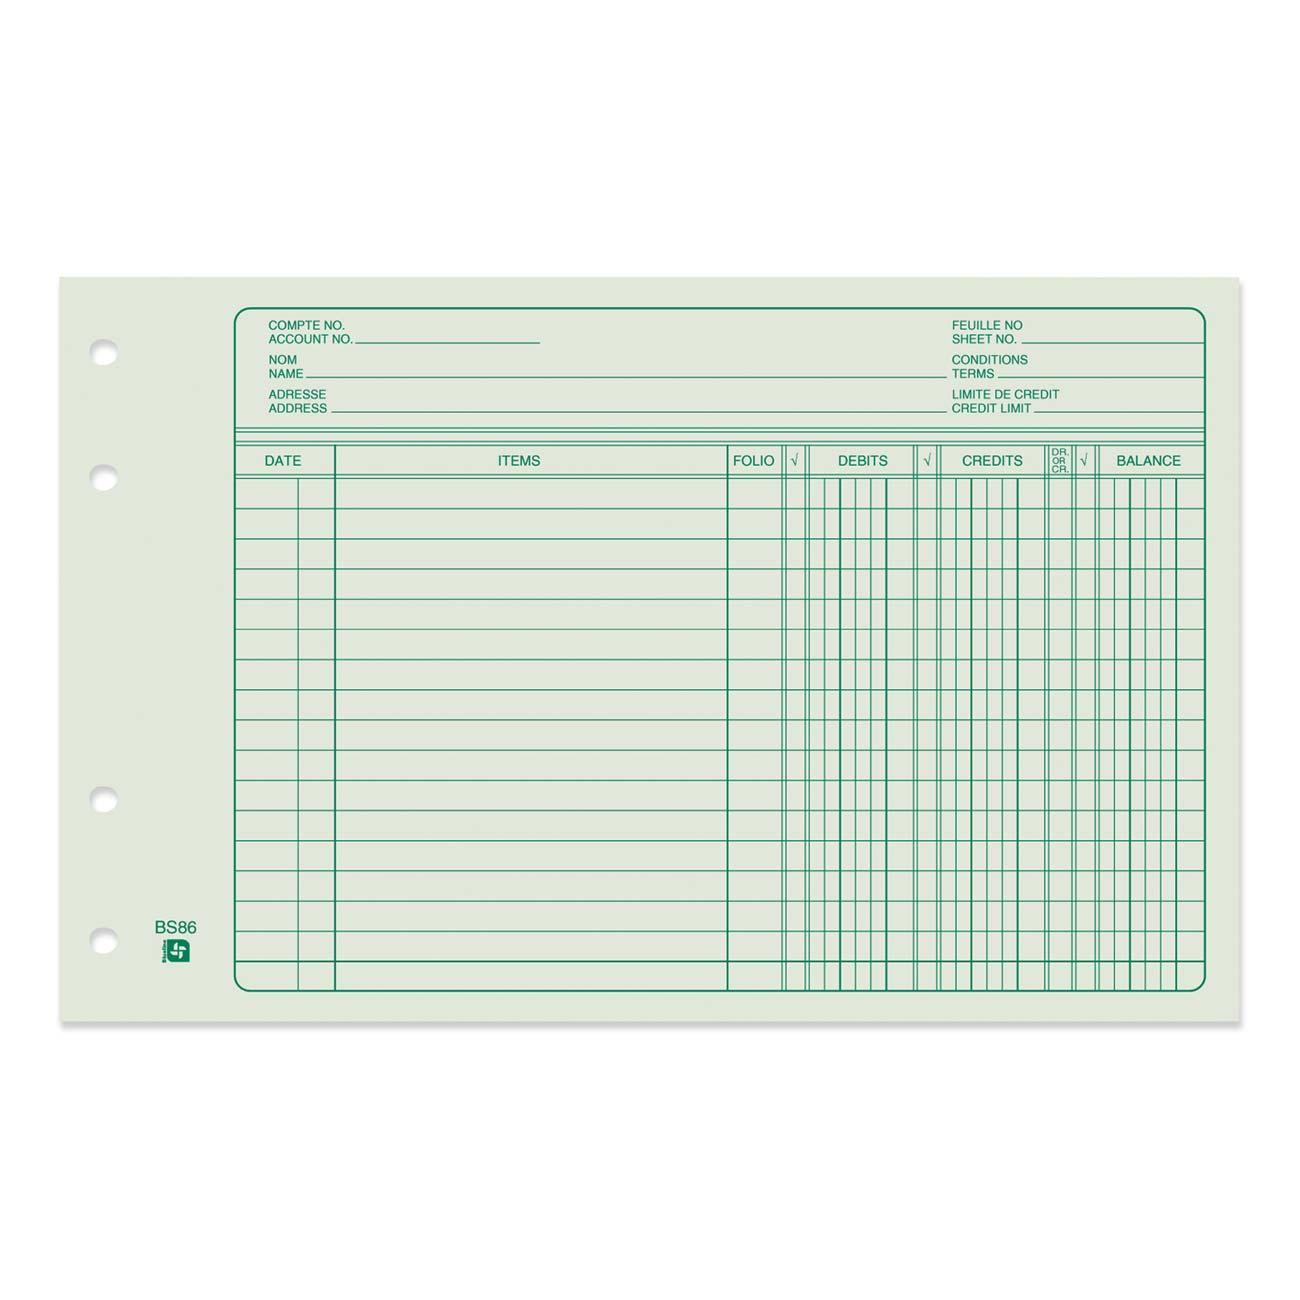 West Coast Office Supplies :: Office Supplies :: Binders - Free Printable 4 Column Ledger Paper